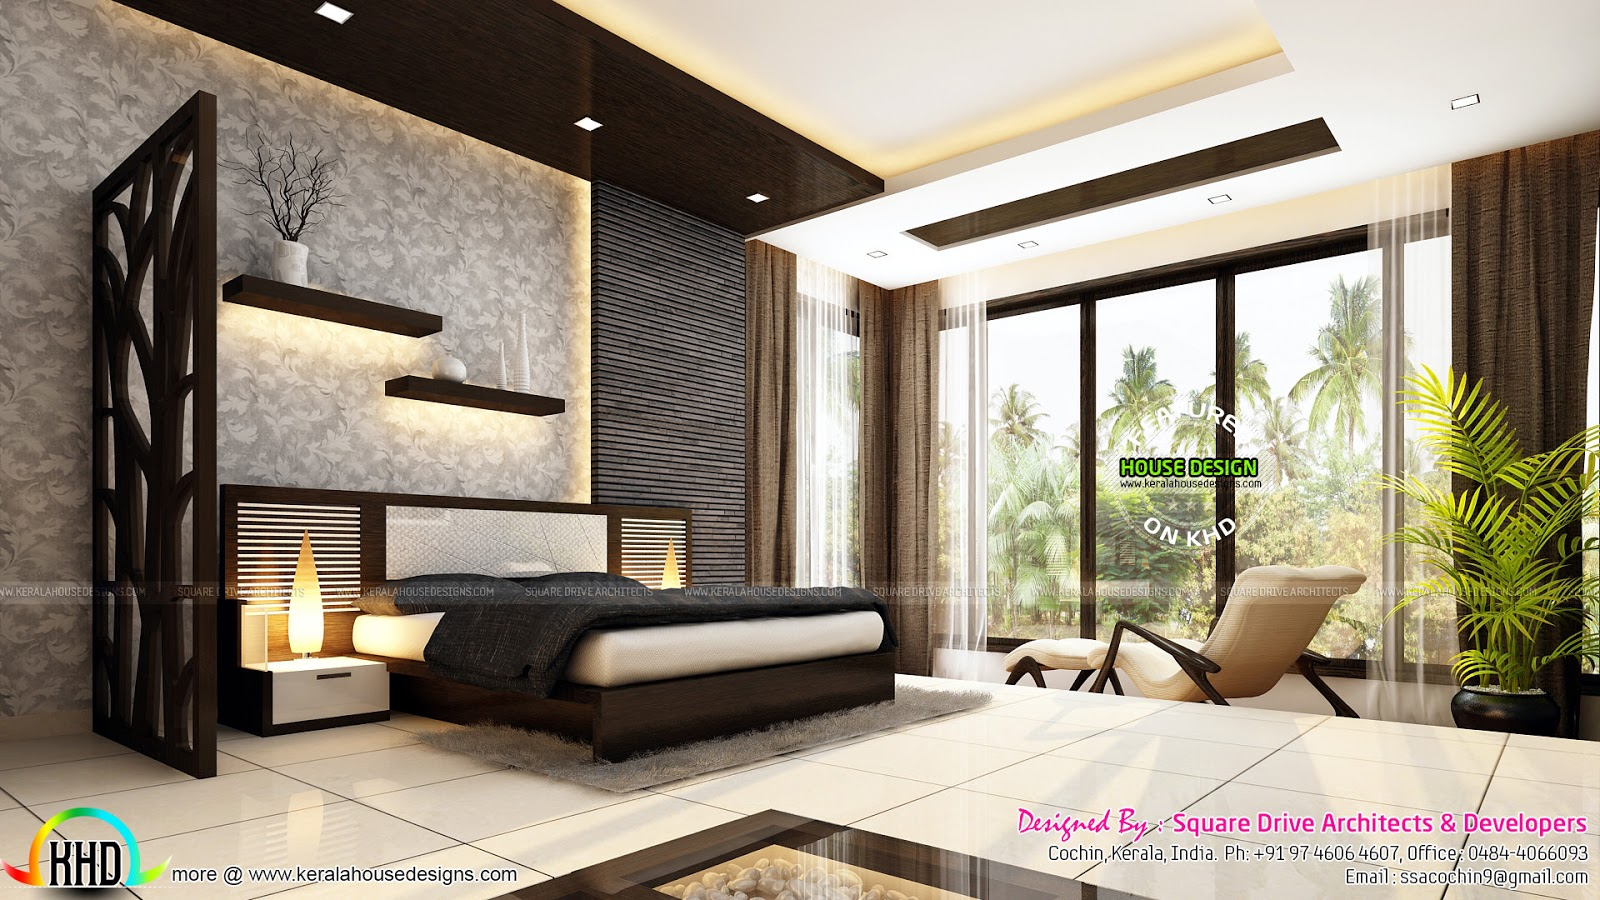 Very beautiful modern interior designs kerala home for Four bedroom design